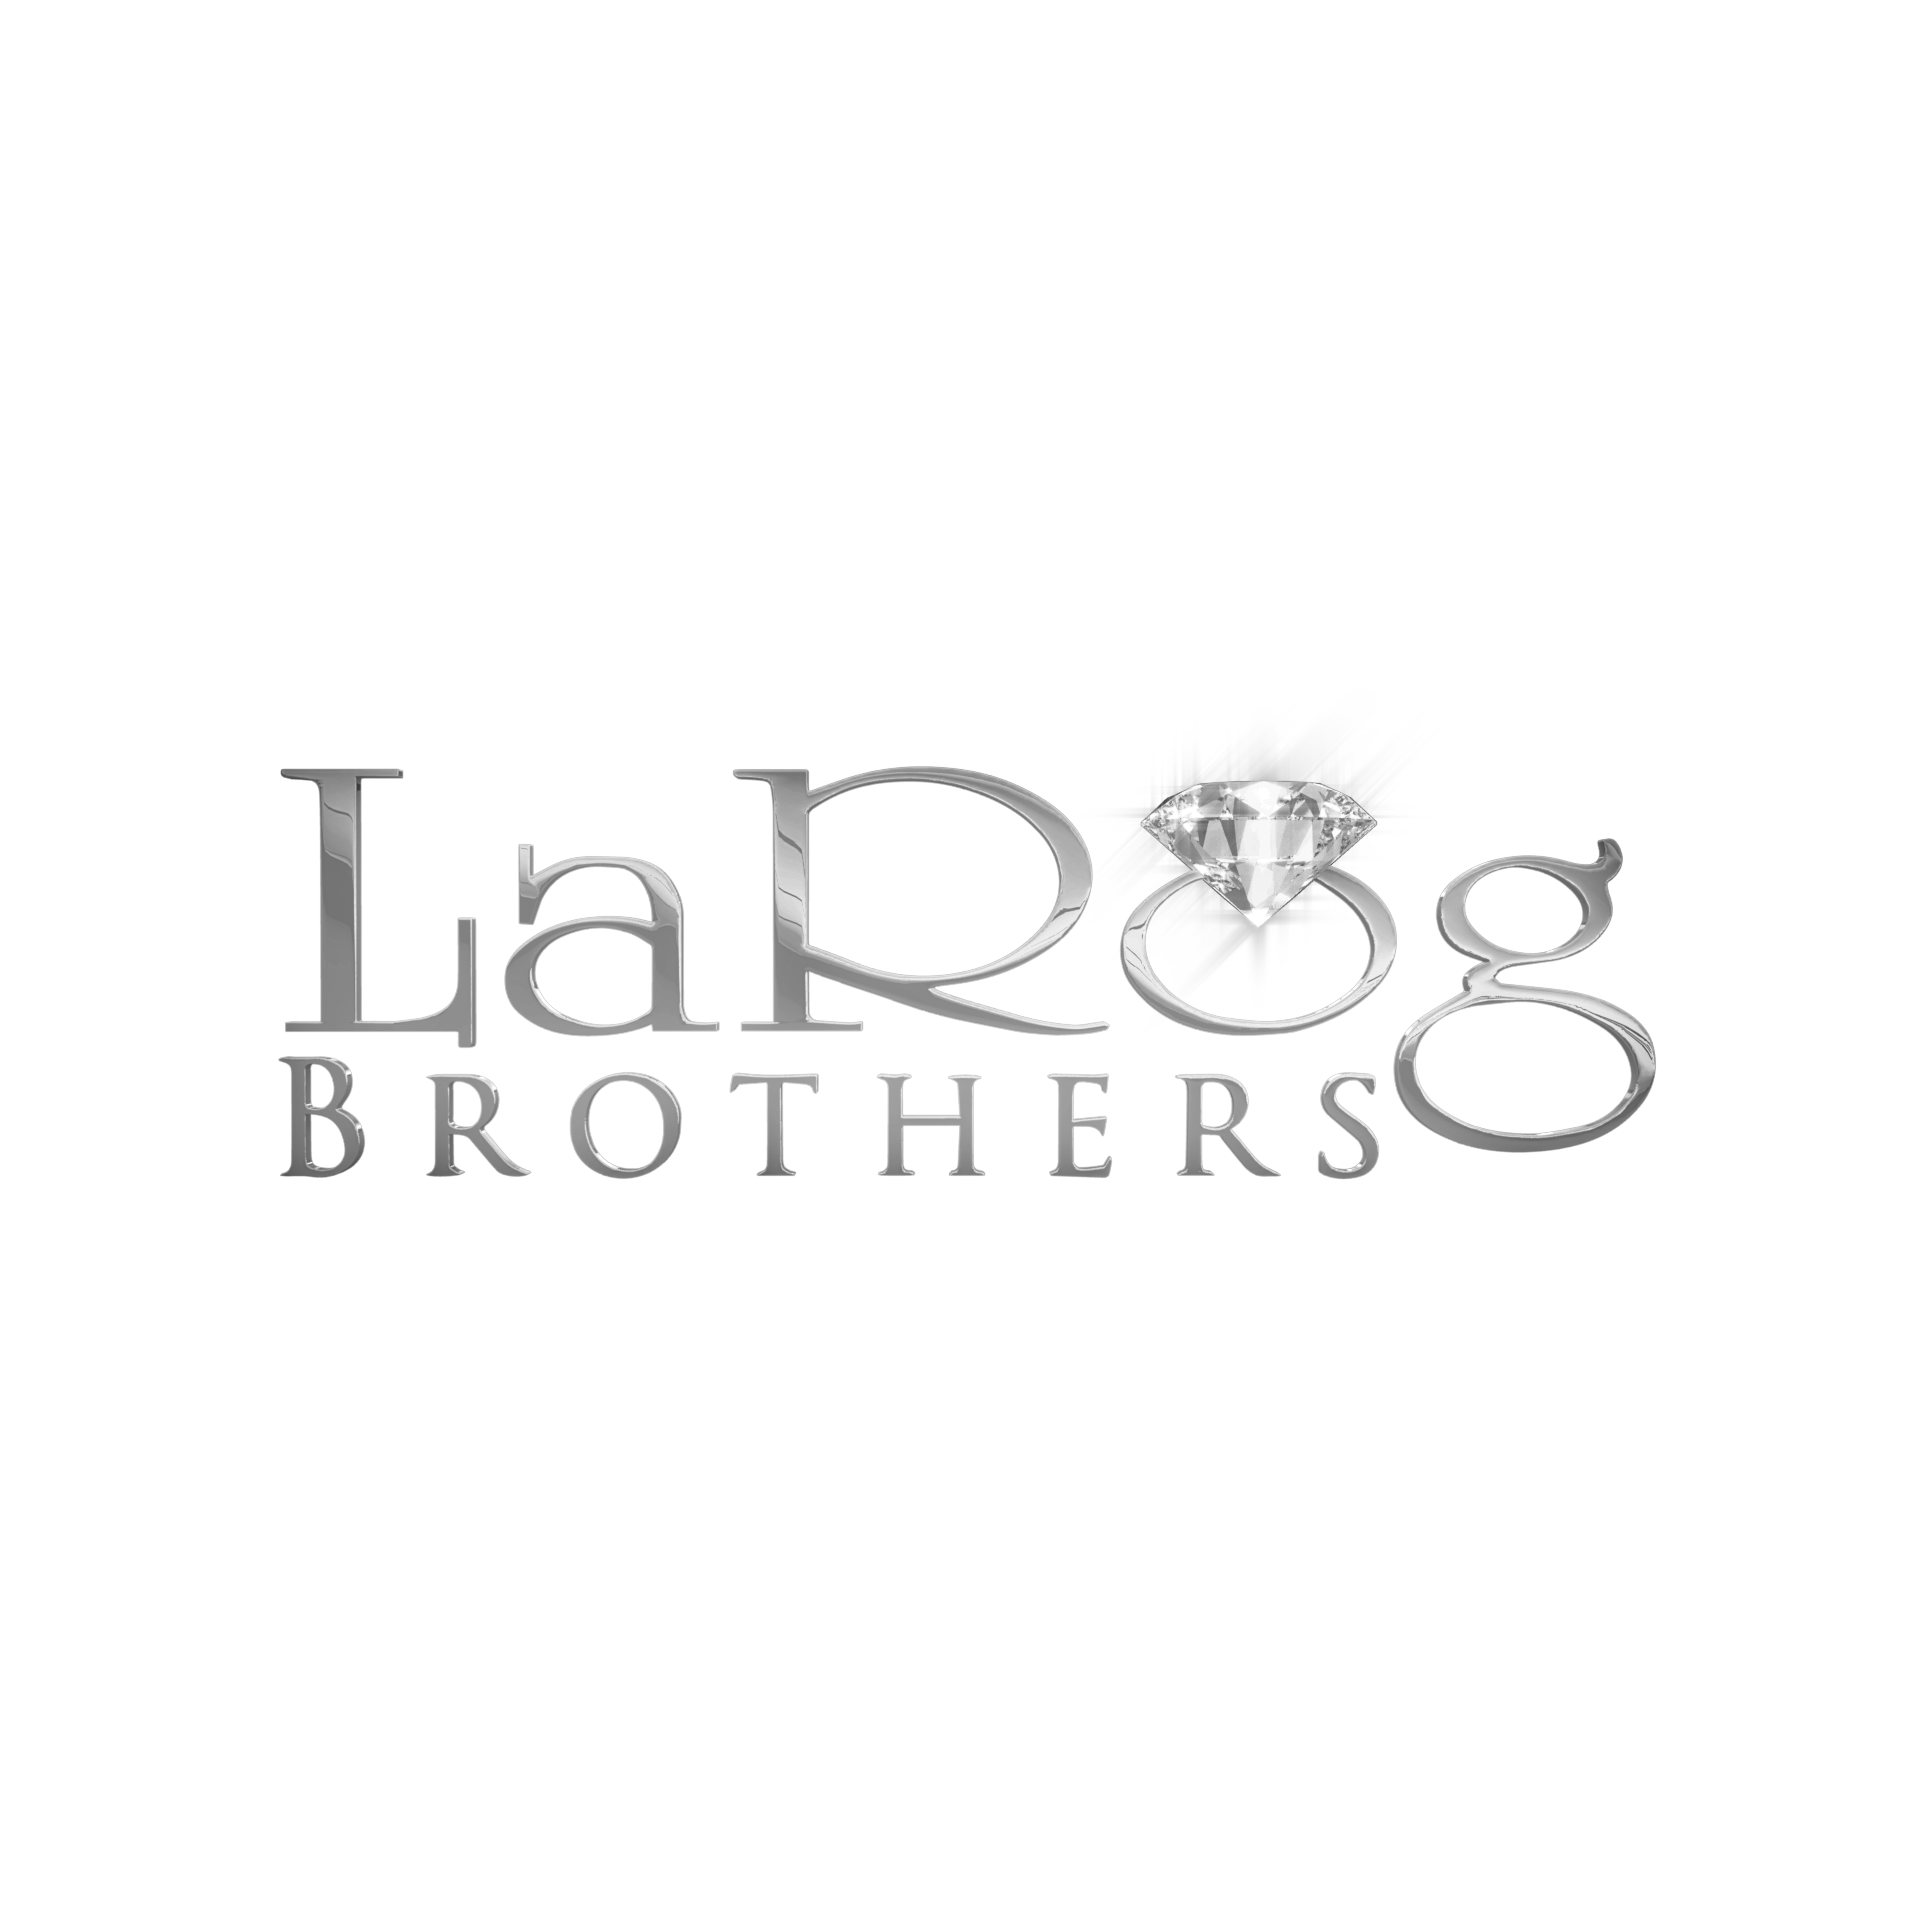 LaRog Brothers Jewelers - Tigard, OR 97223 - (503)684-4824 | ShowMeLocal.com